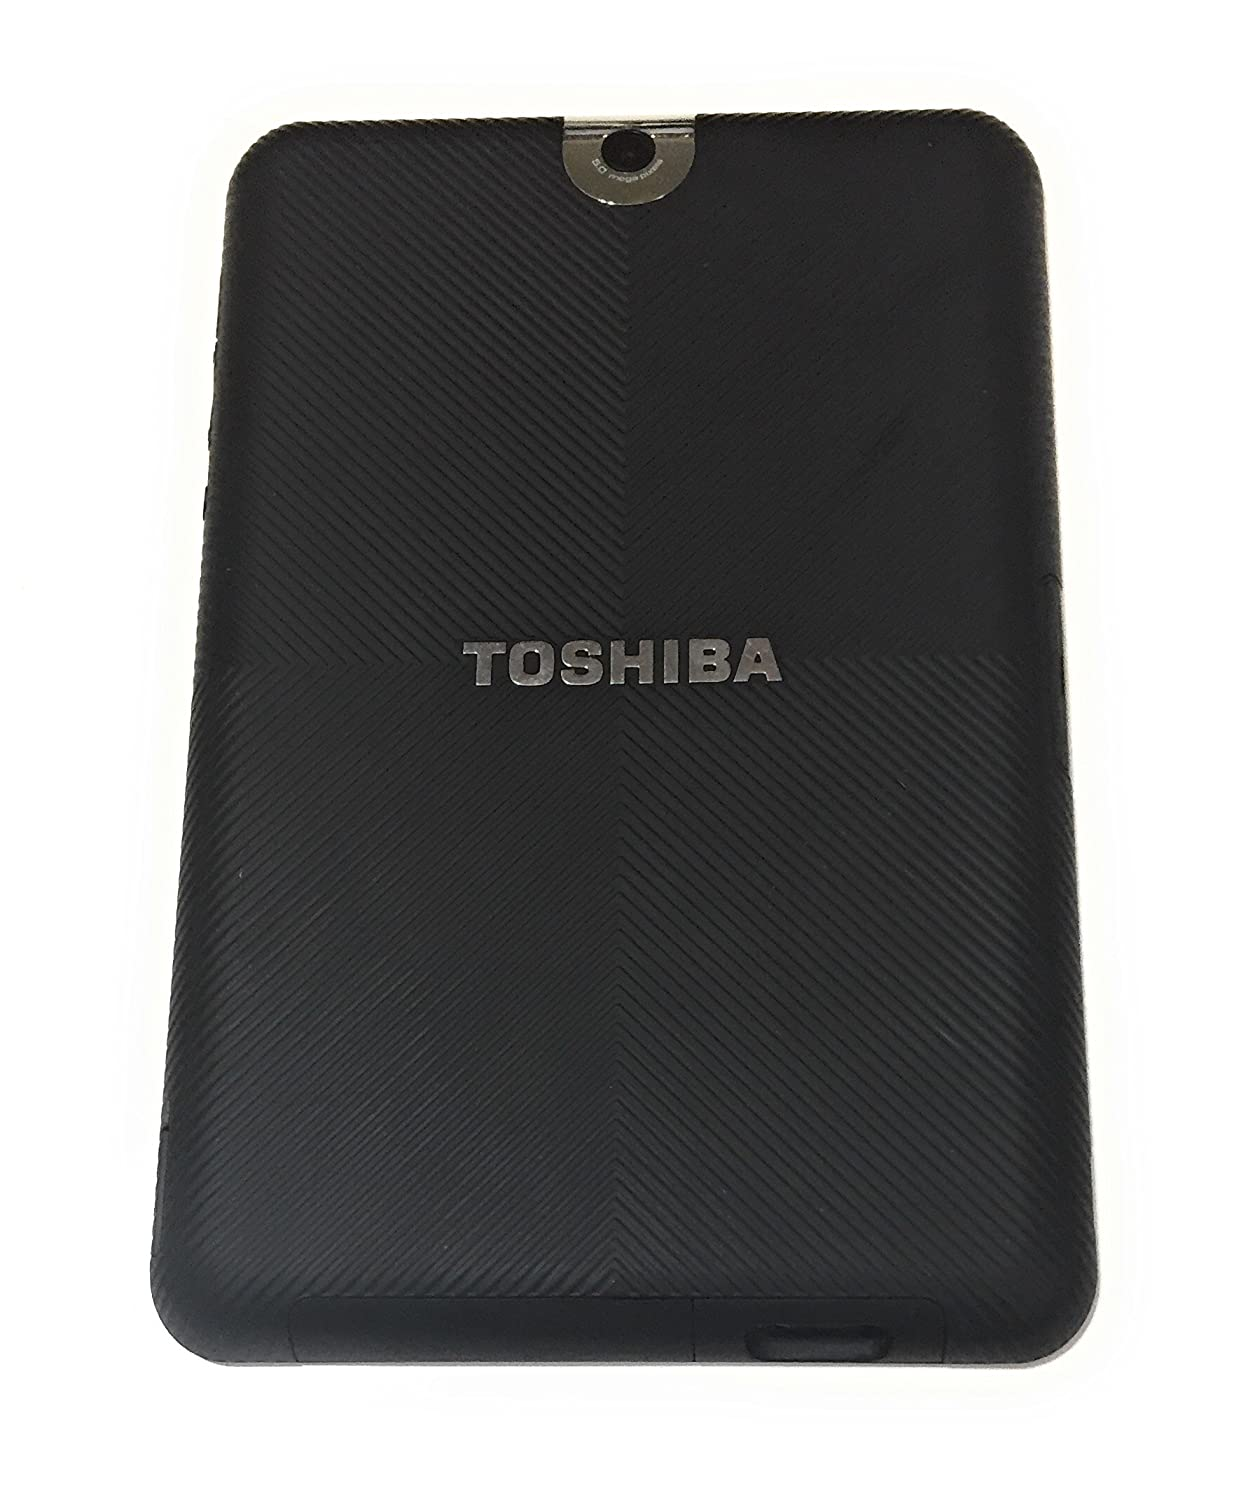 Toshiba Thrive AT105-T1016 16GB Negro - Tablet (Android ...